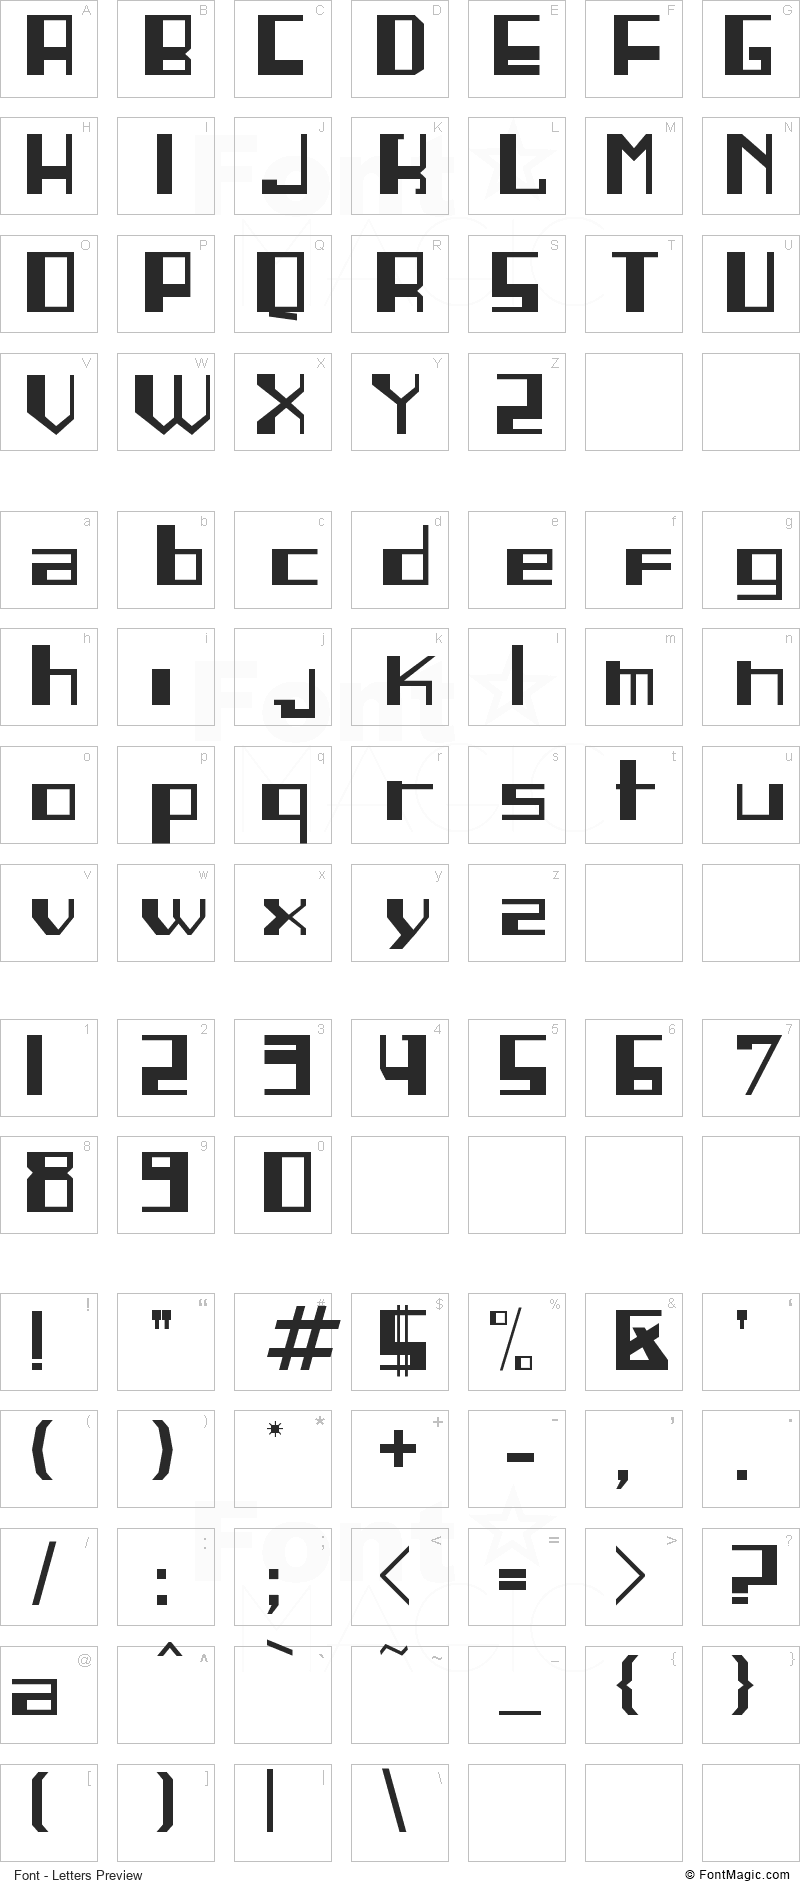 Linea Font - All Latters Preview Chart